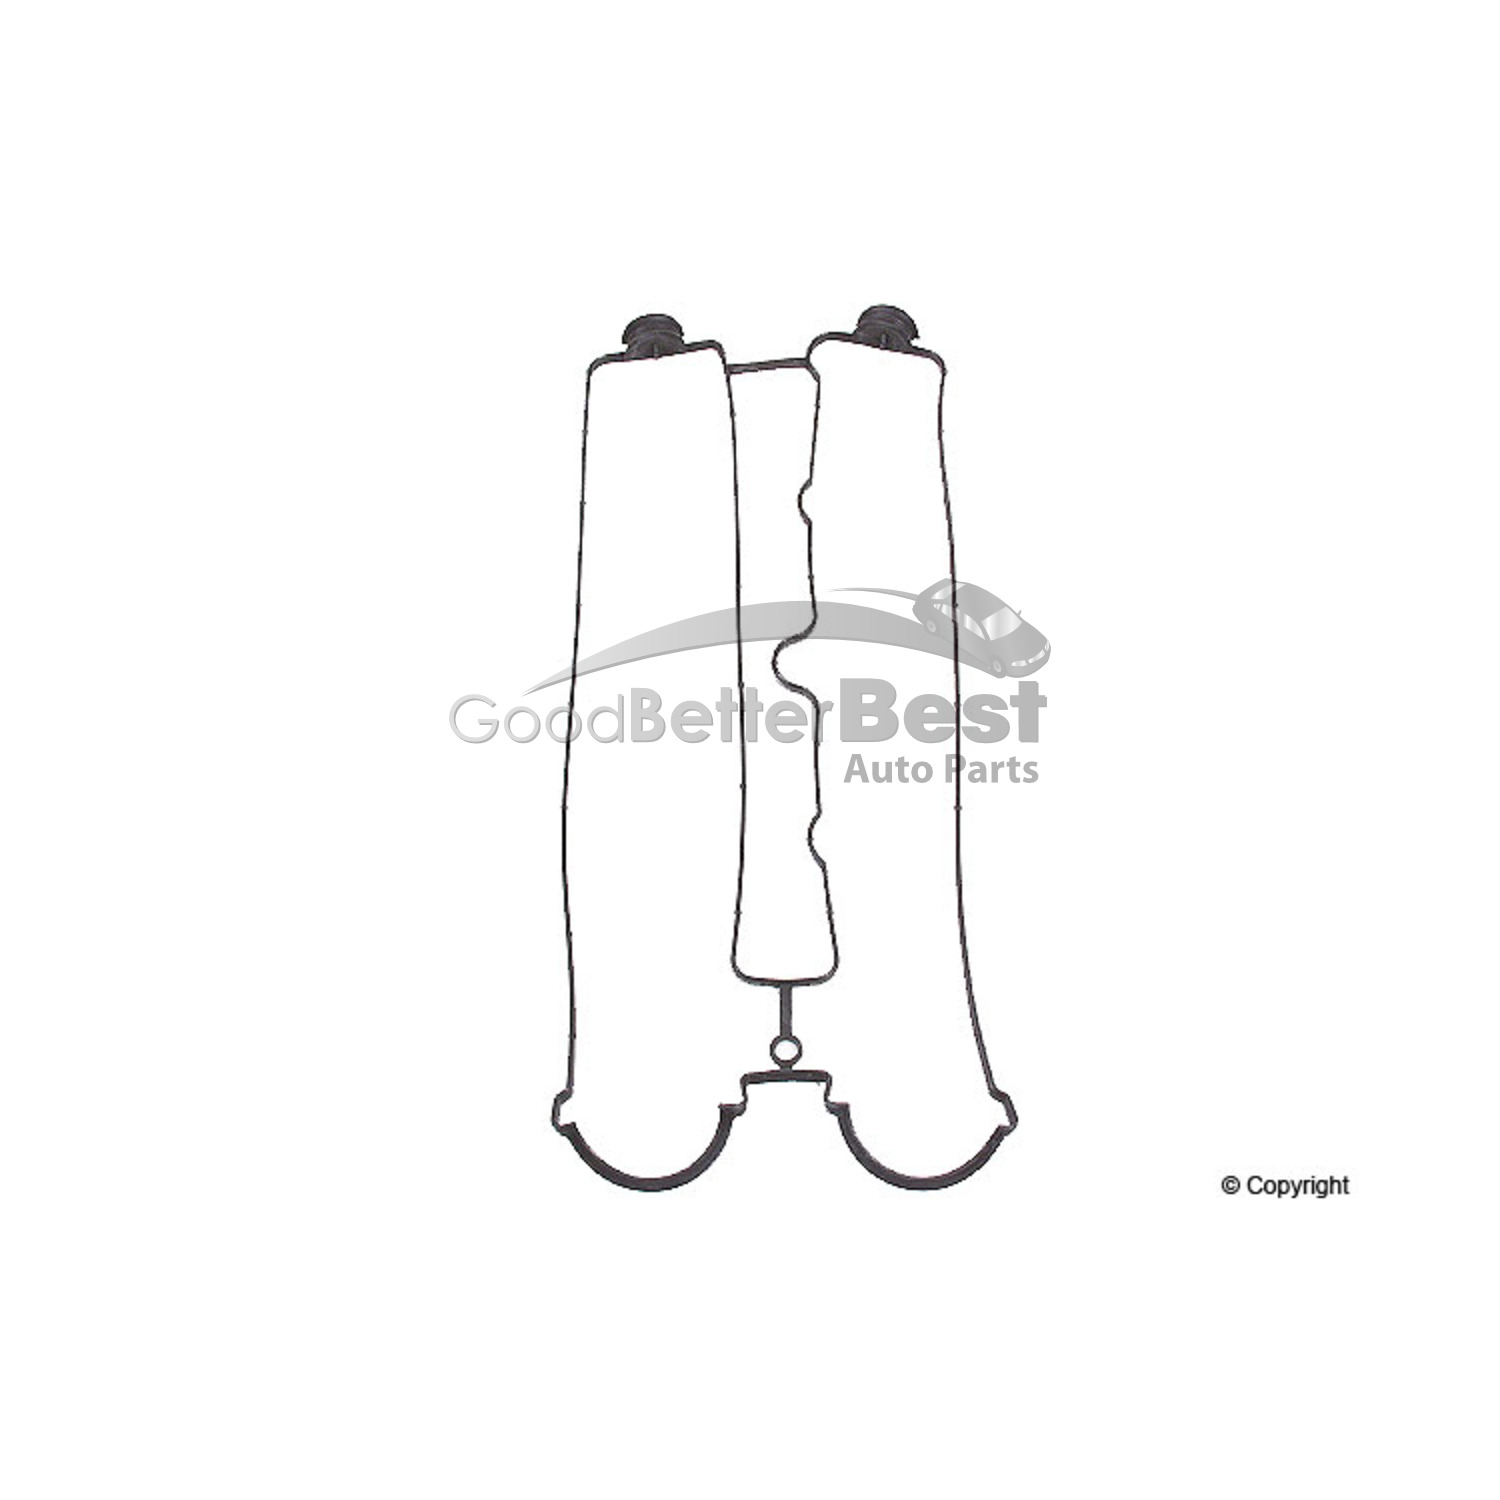 One New Parts Mall Engine Valve Cover Gasket P1gc001g For